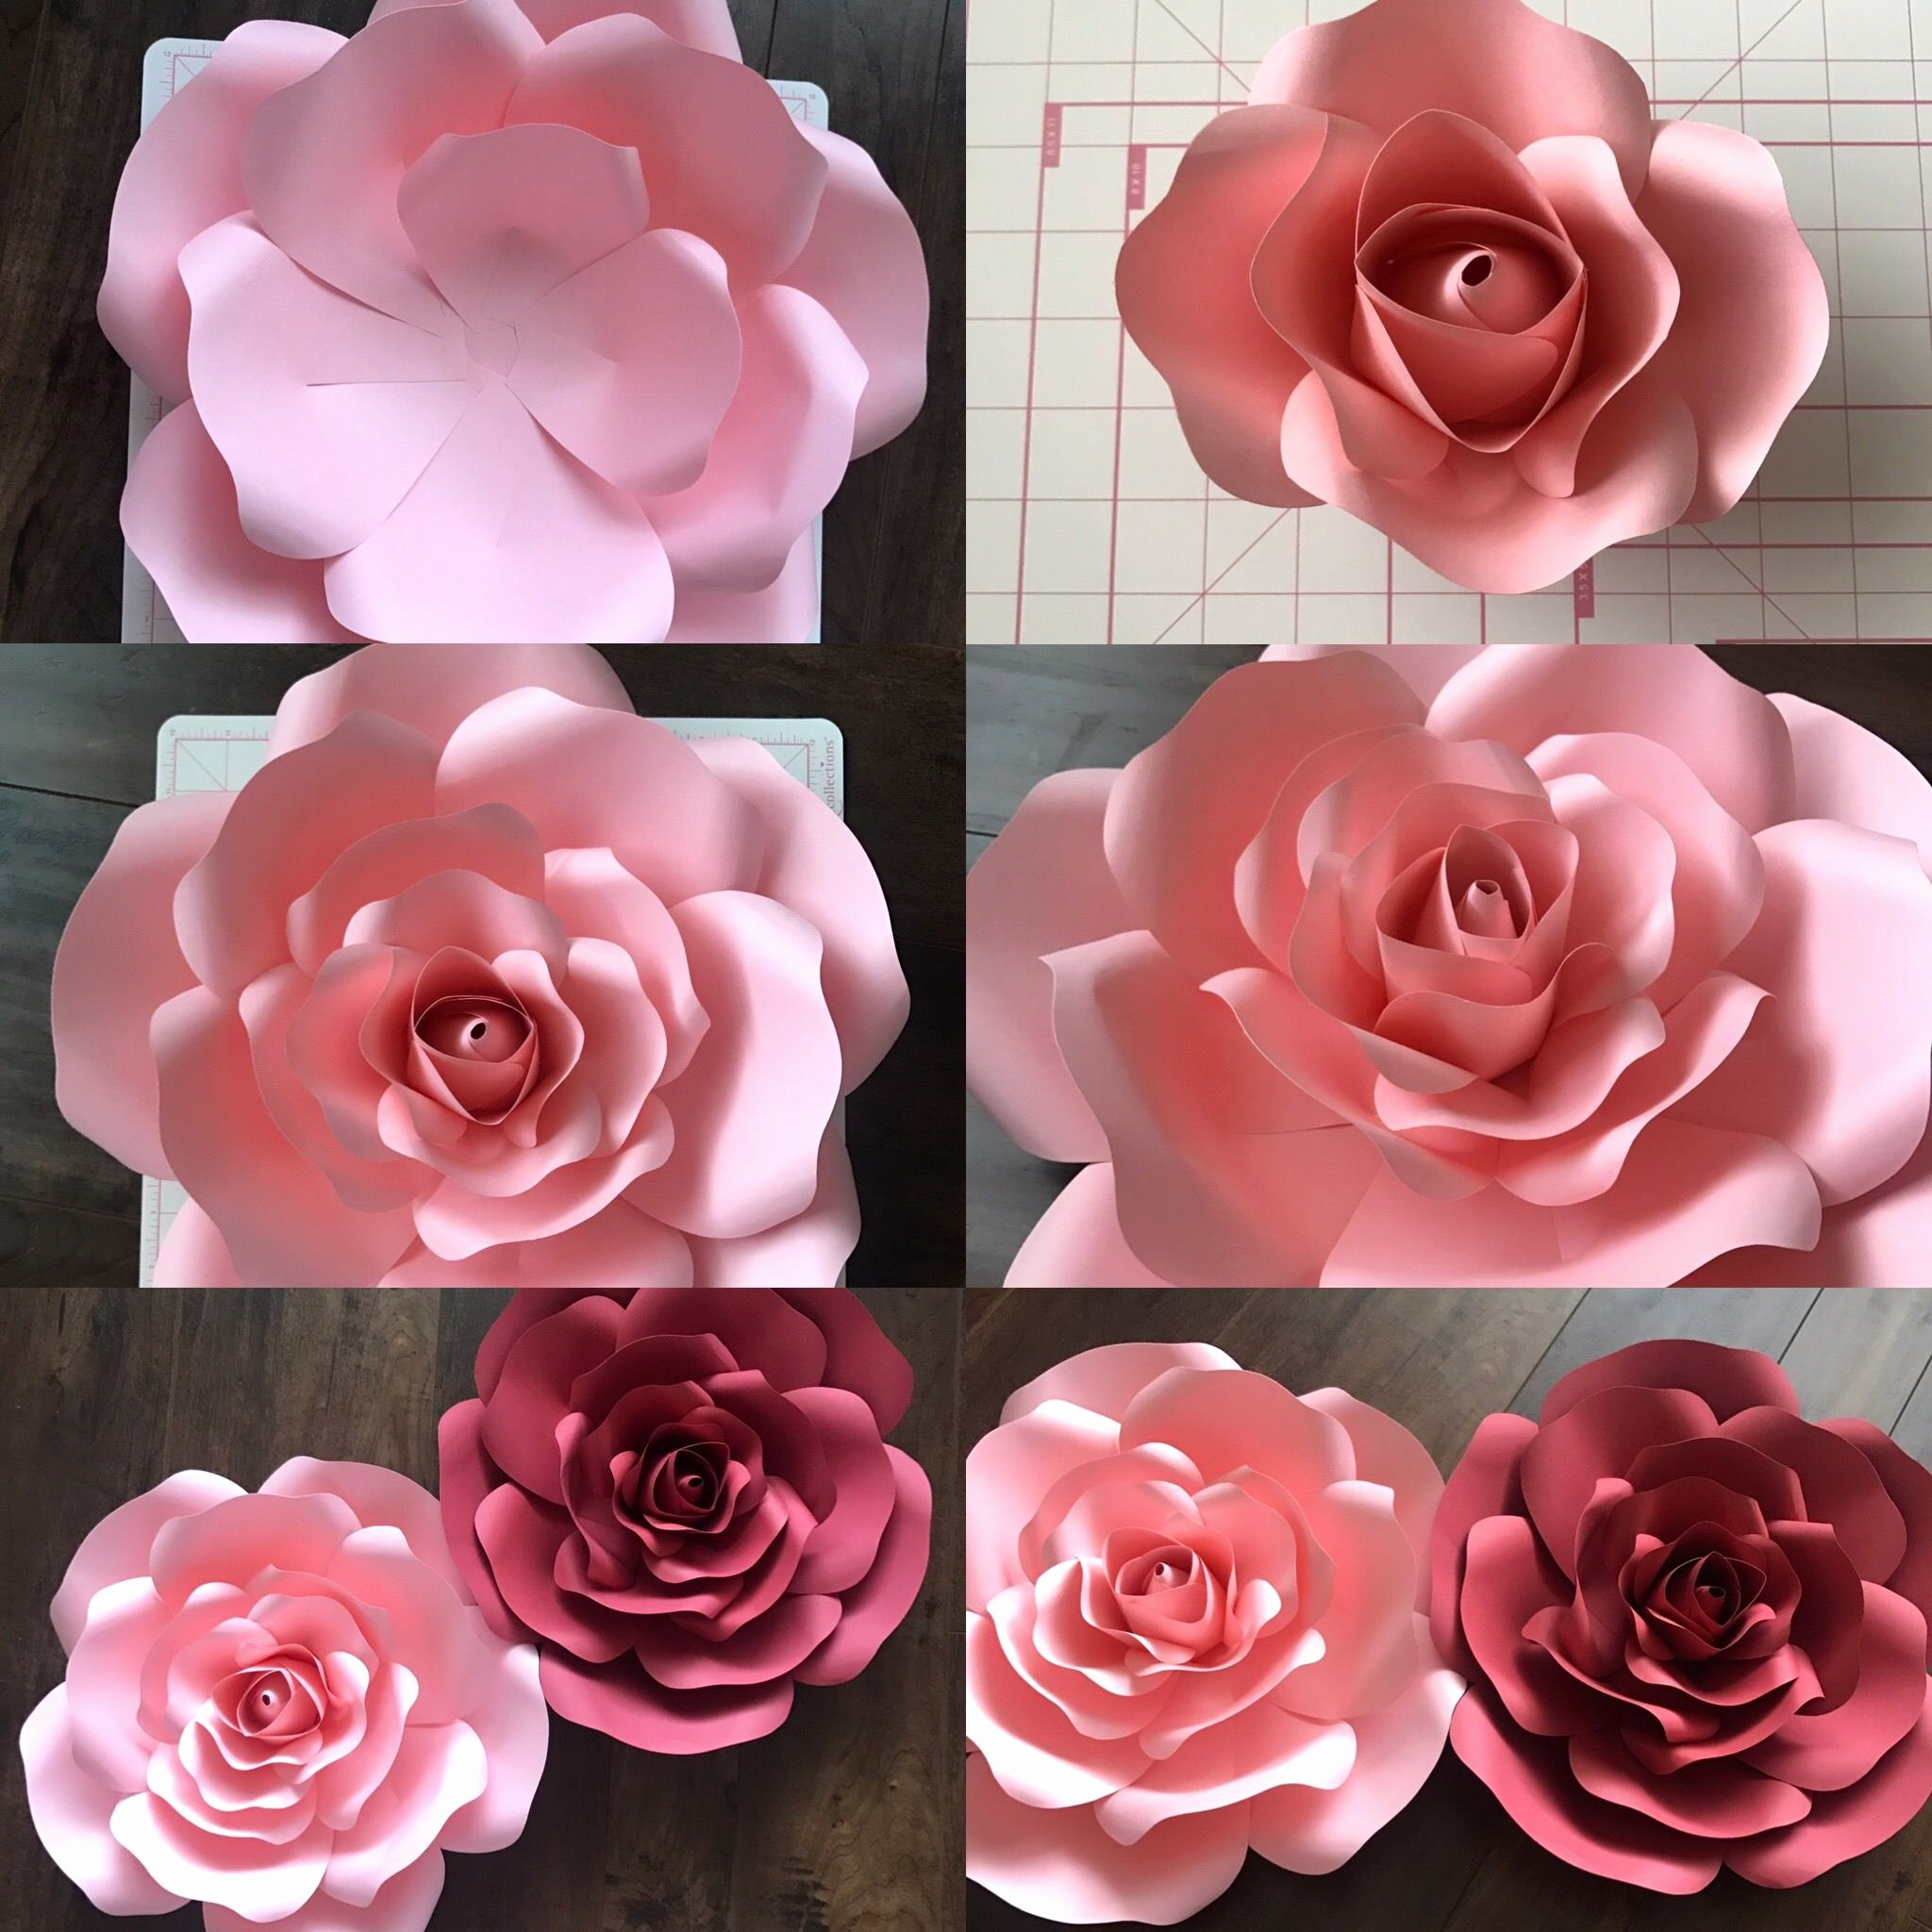 Template for Paper Flowers Unique Free Template and Tutorial On Ann Neville Design Blog